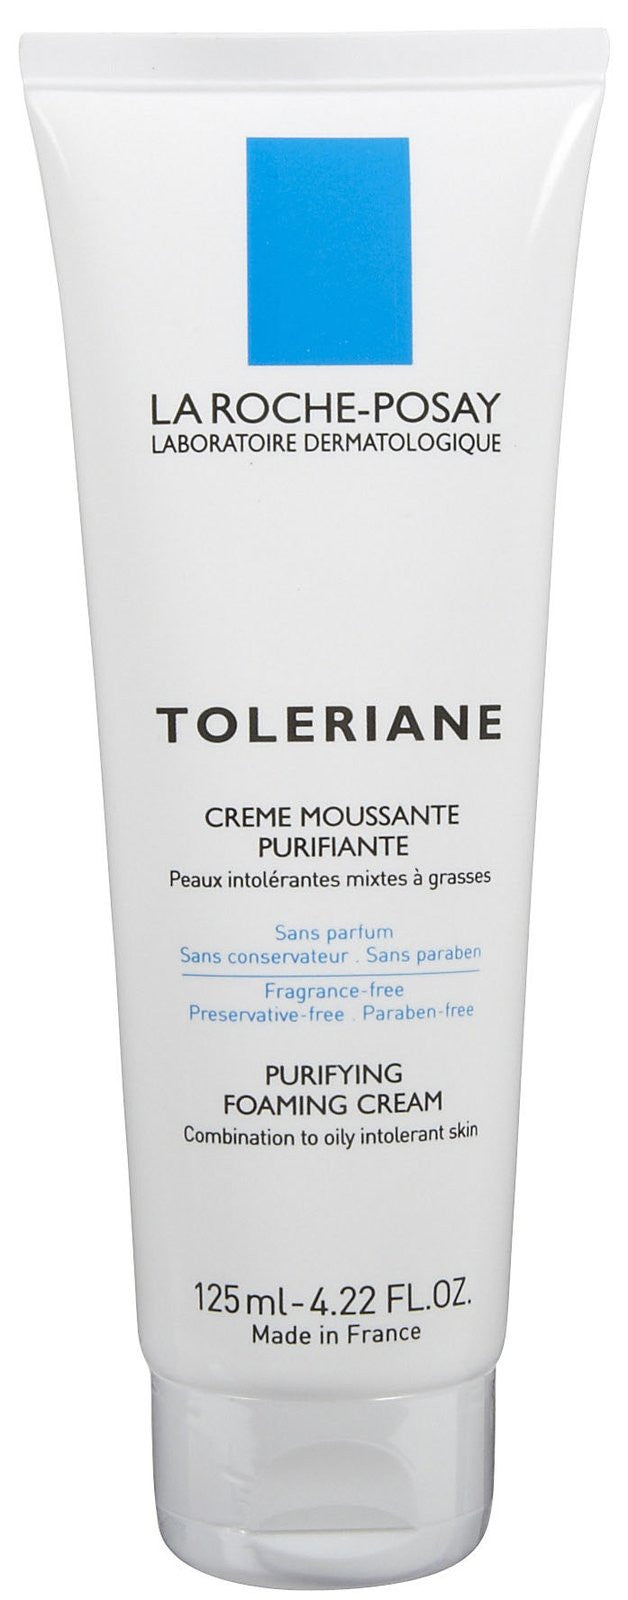 La Roche-Posay Toleriane Purifying Foaming Cream